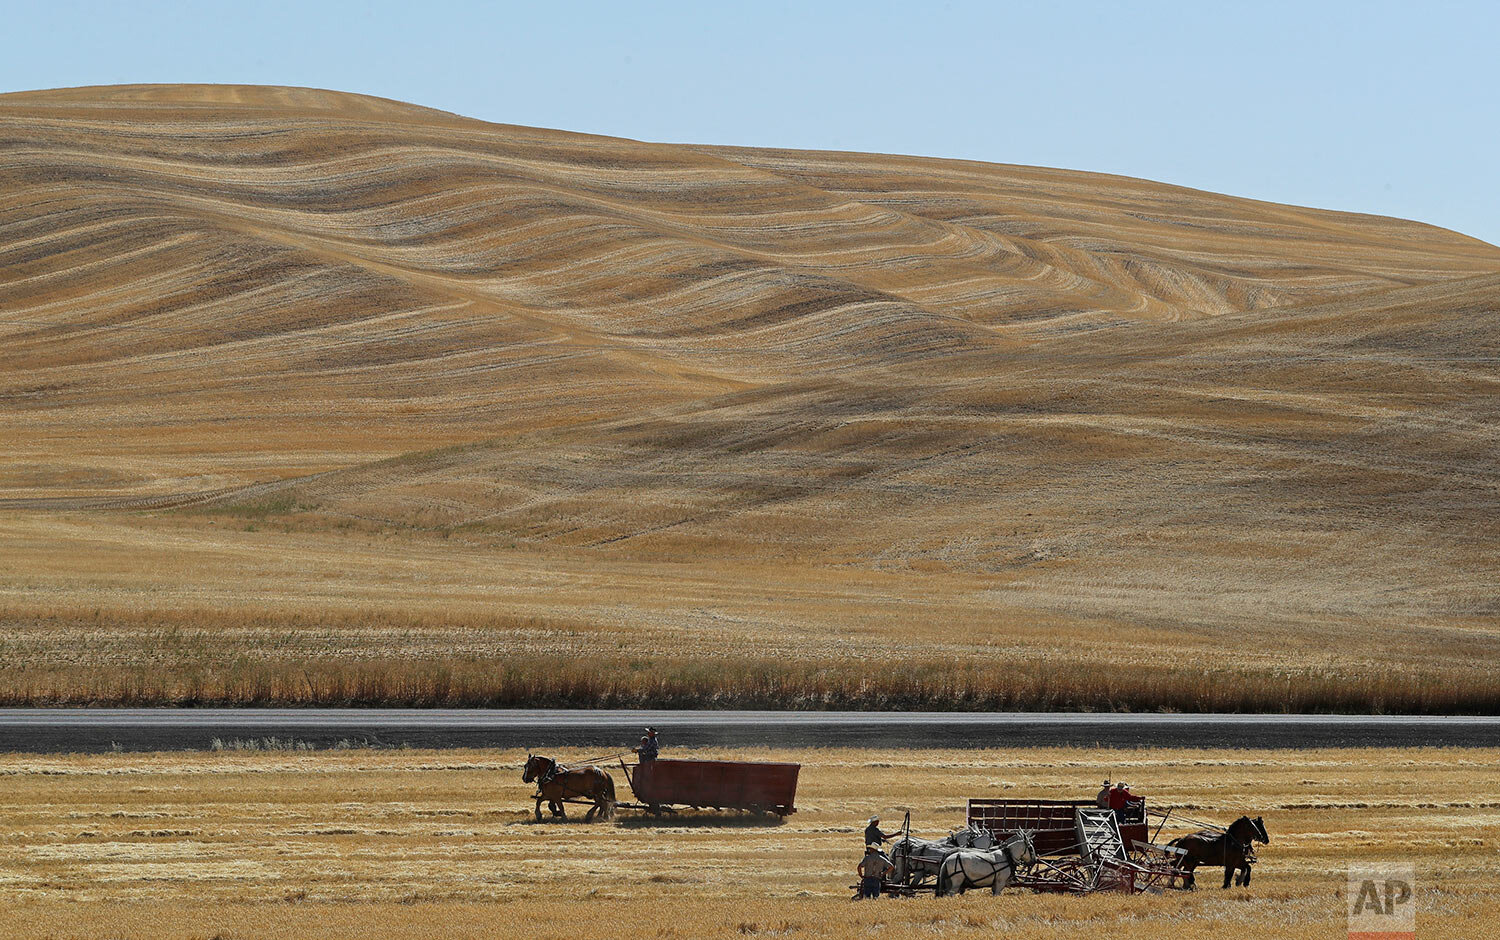 Teams of horses and mules are used to harvest barley on a field near Colfax, Wash., during an annual demonstration by members of the Palouse Empire Threshing Bee Association, a group dedicated to preserving the way land was farmed decades ago, Sept. 2, 2019. (AP Photo/Ted S. Warren)